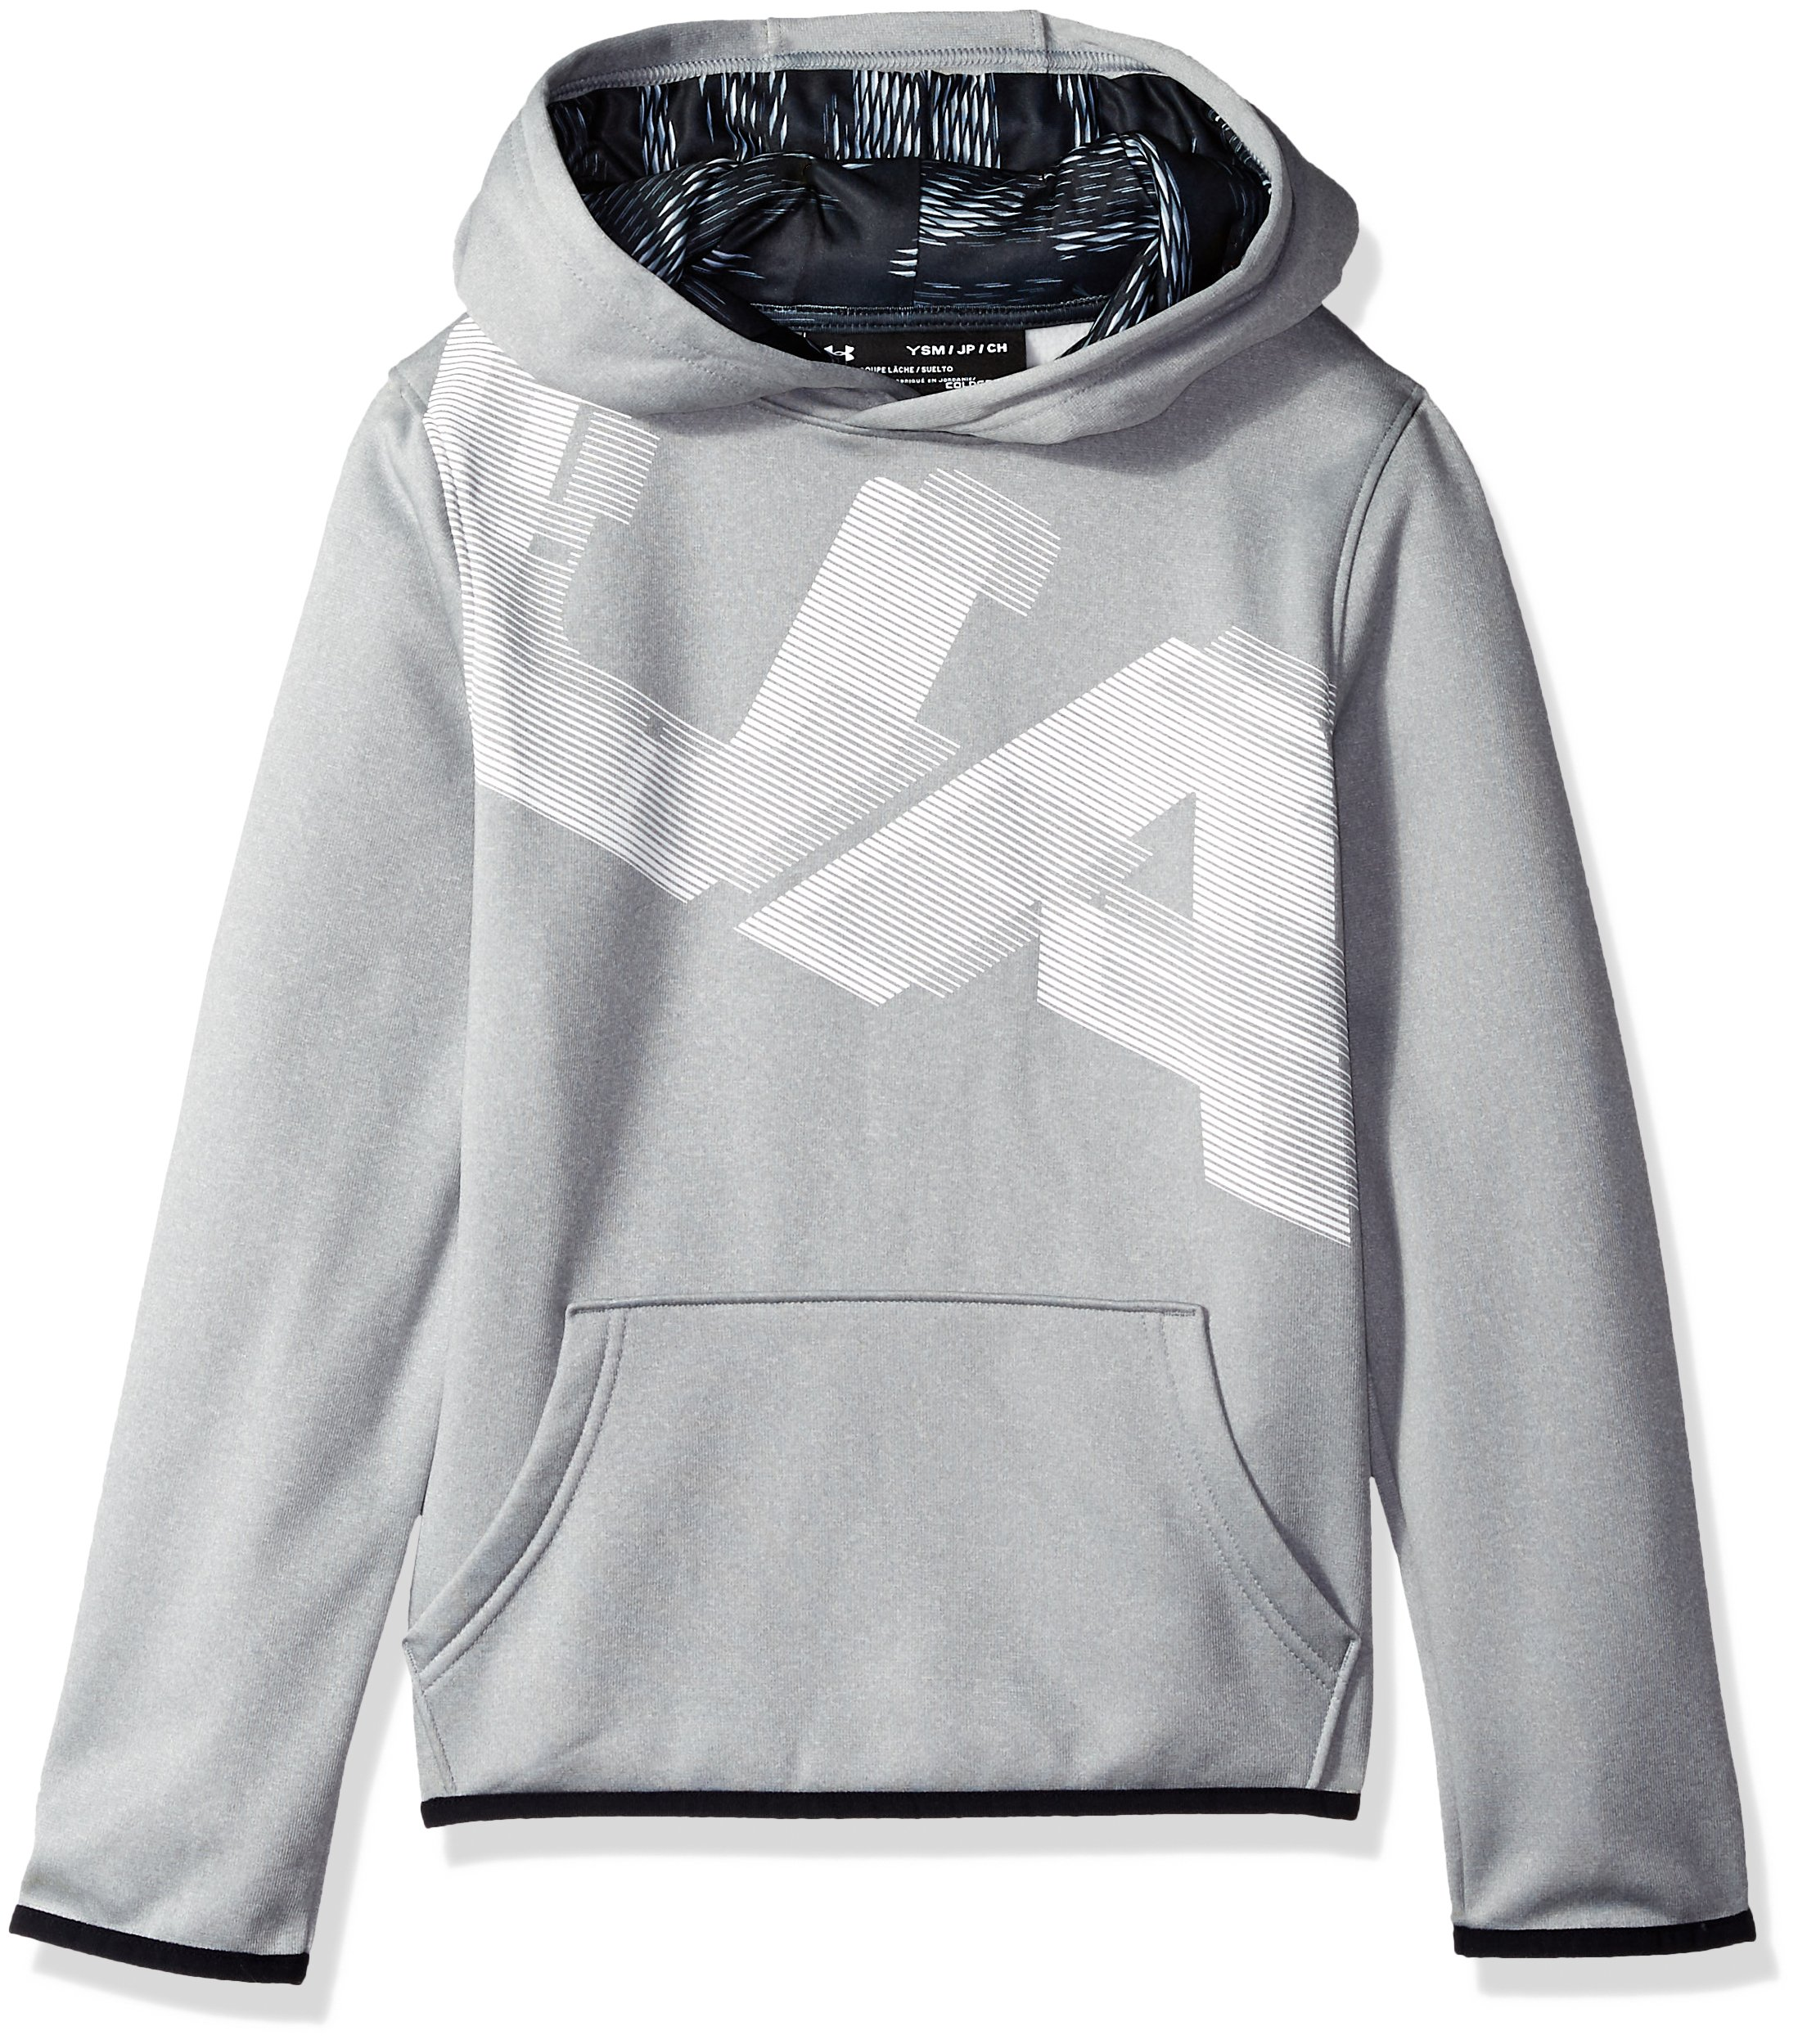 Under Armour Boys Fleece Highlight Printed Hoodie, Steel (035)/White, Youth X-Small by Under Armour